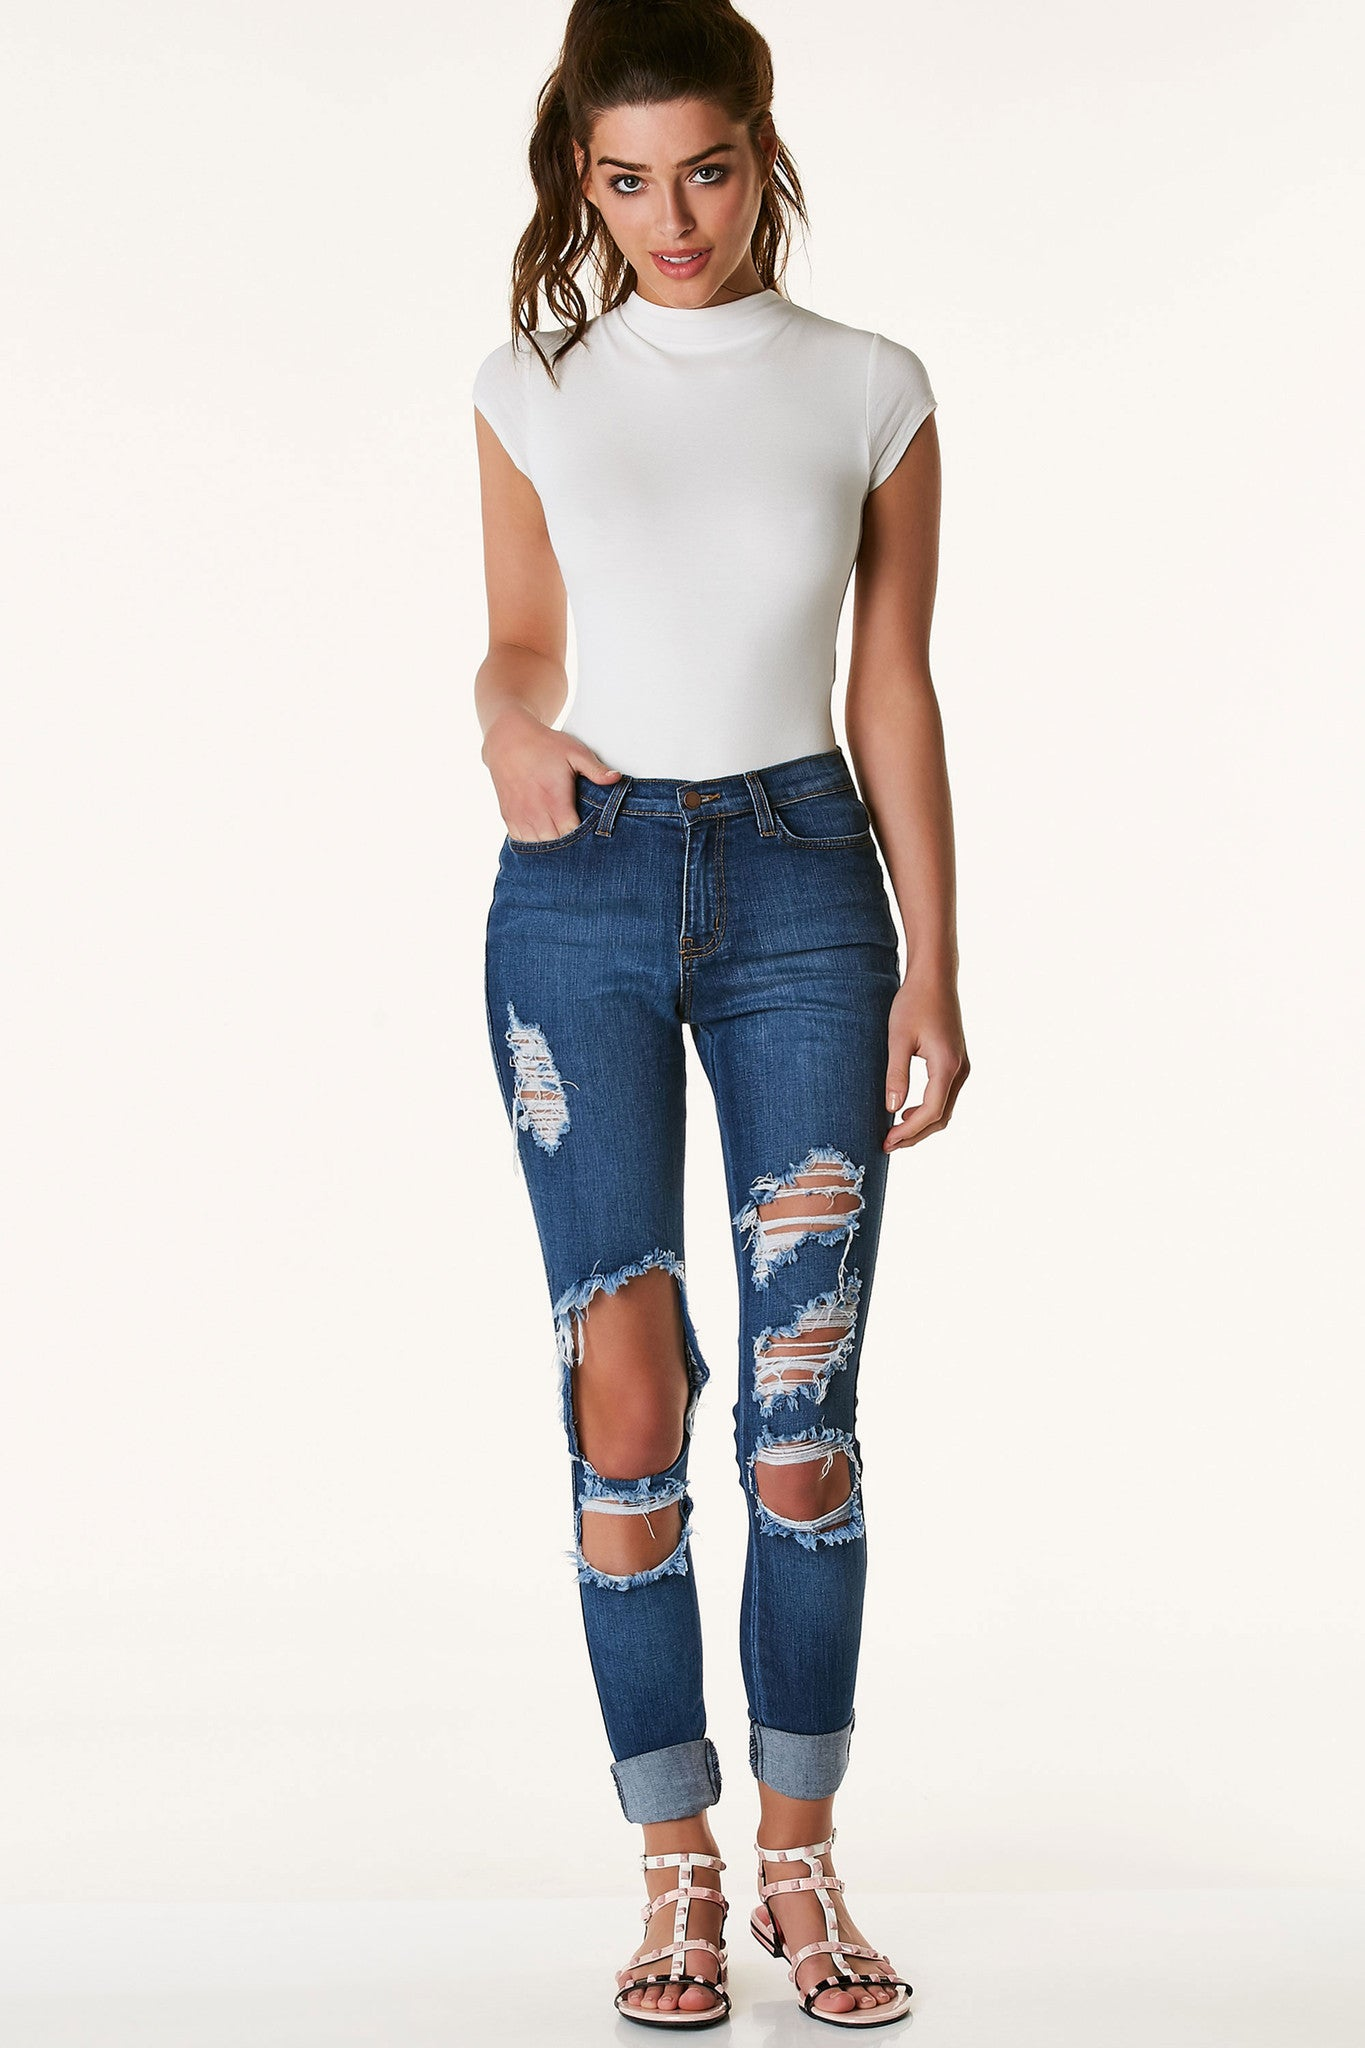 Dare Devil Distressed High Waist Jeans